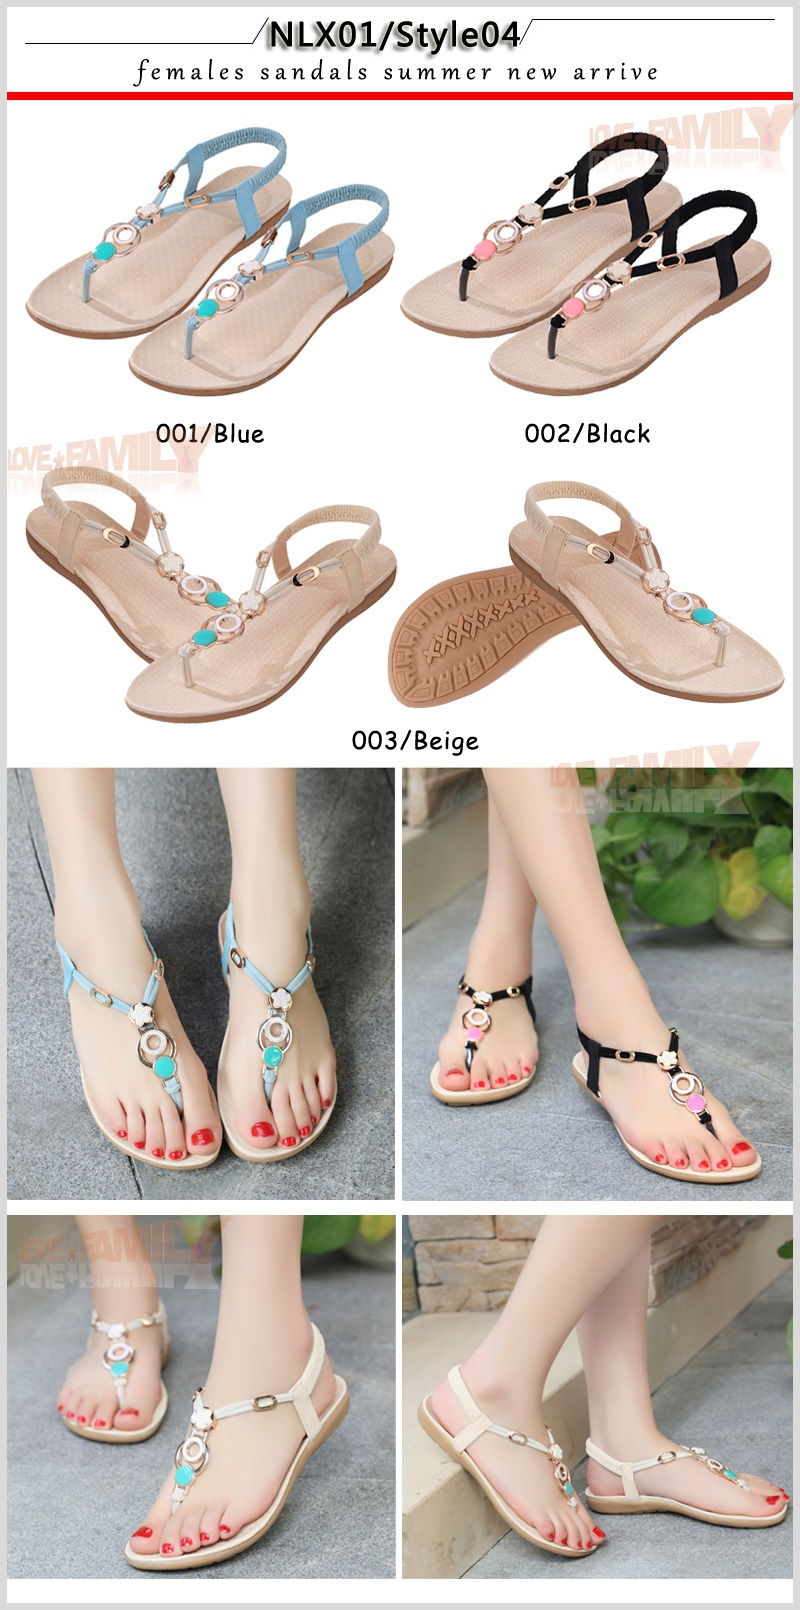 8a29d82aee06 Buy Female sandals slippers Bohemian style Ladies Wedge Sandals 40 ...